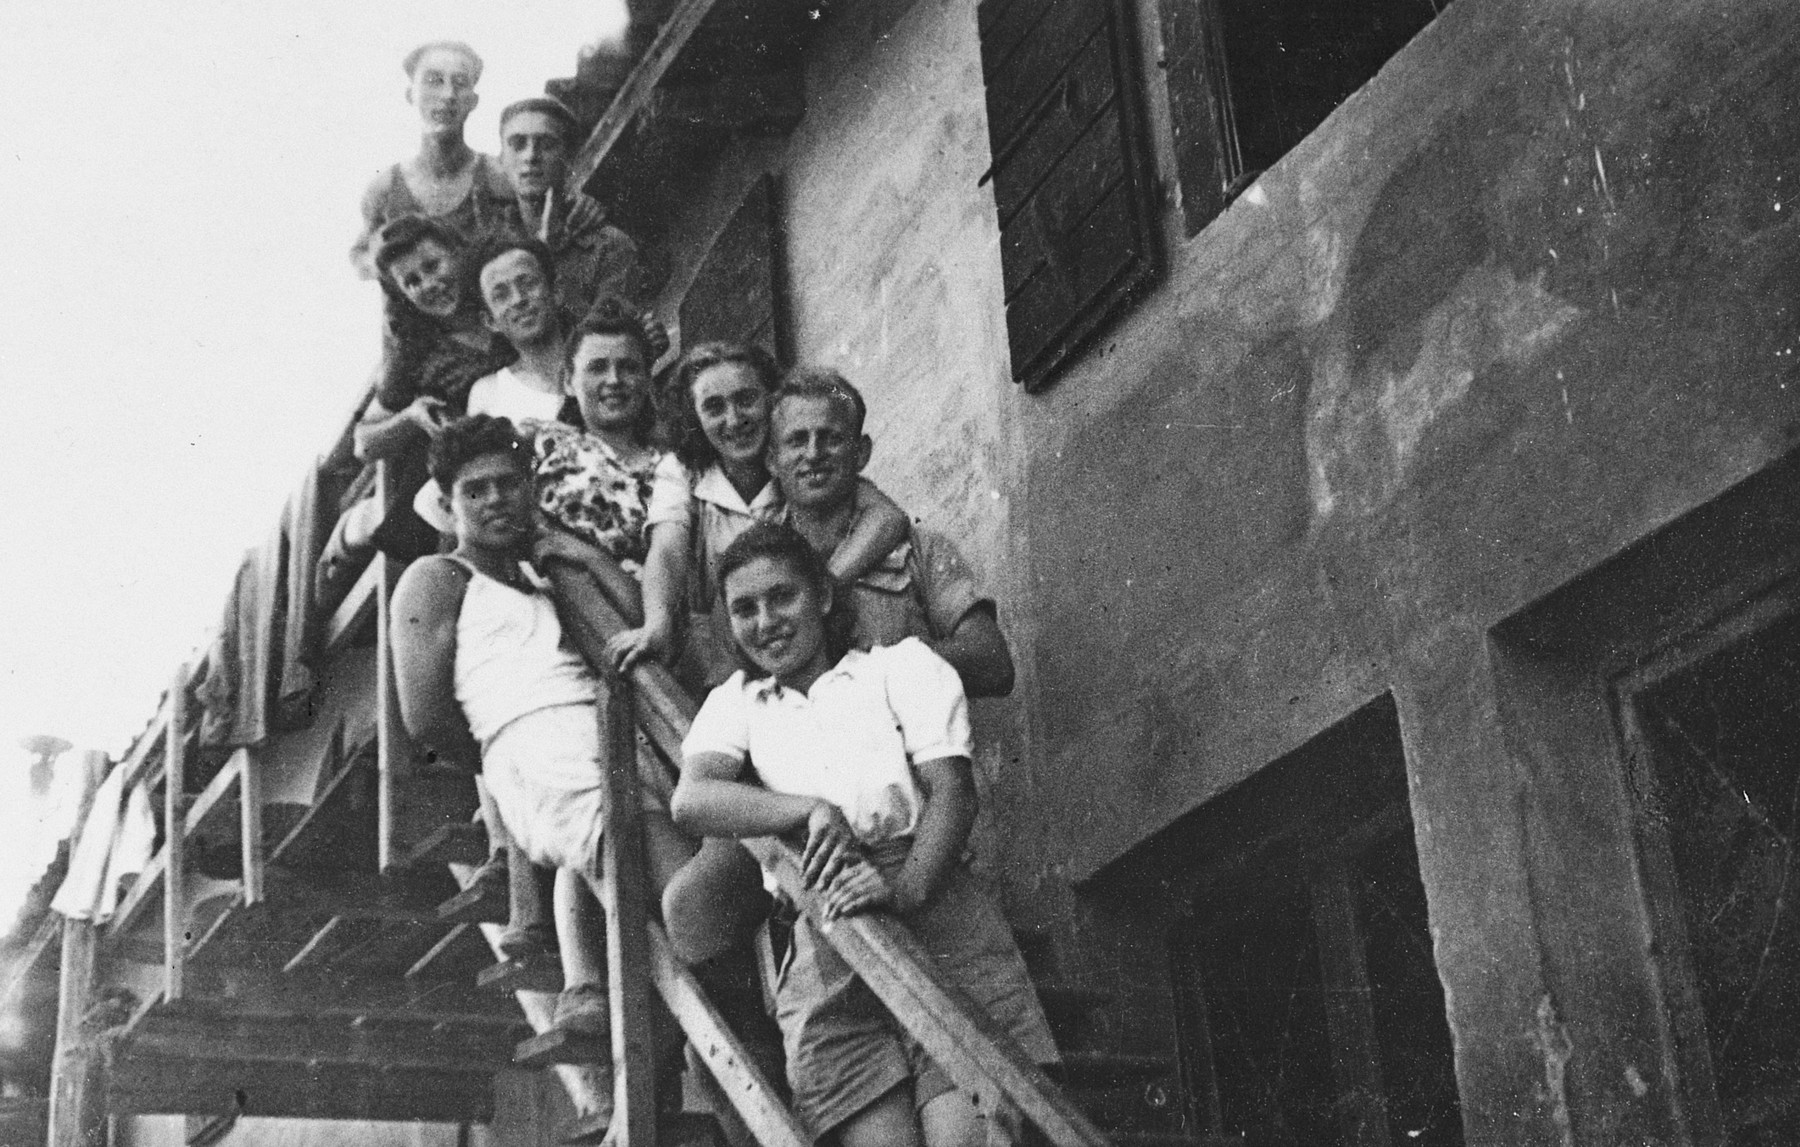 Members of Kibbutz Maestro pose by the railing of the outside steps to a building.  Among those pictured is Boris Shub.